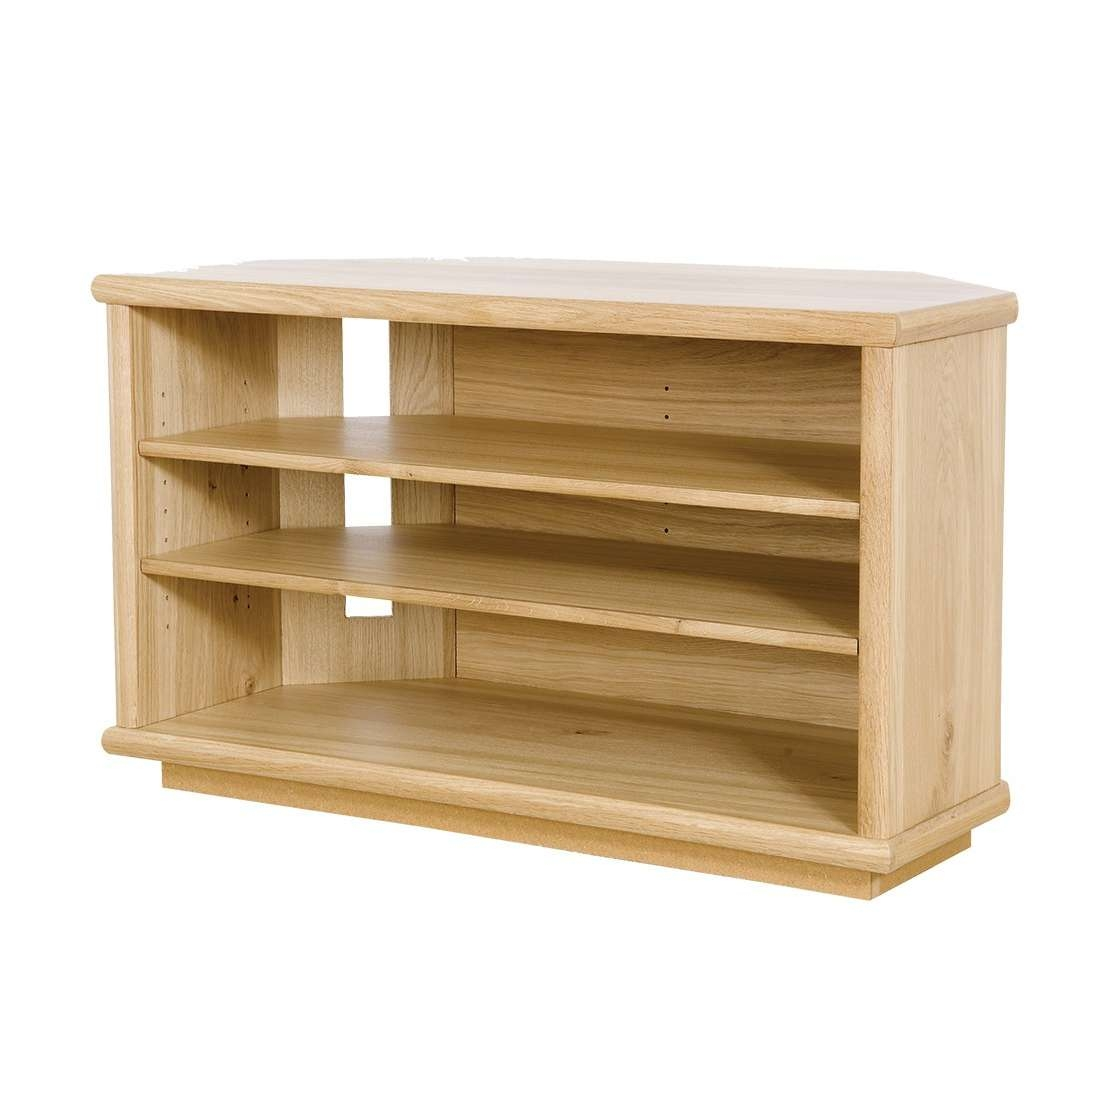 Oak Corner Tv Stand | Gola Furniture Uk Throughout Corner Wooden Tv Stands (View 6 of 15)